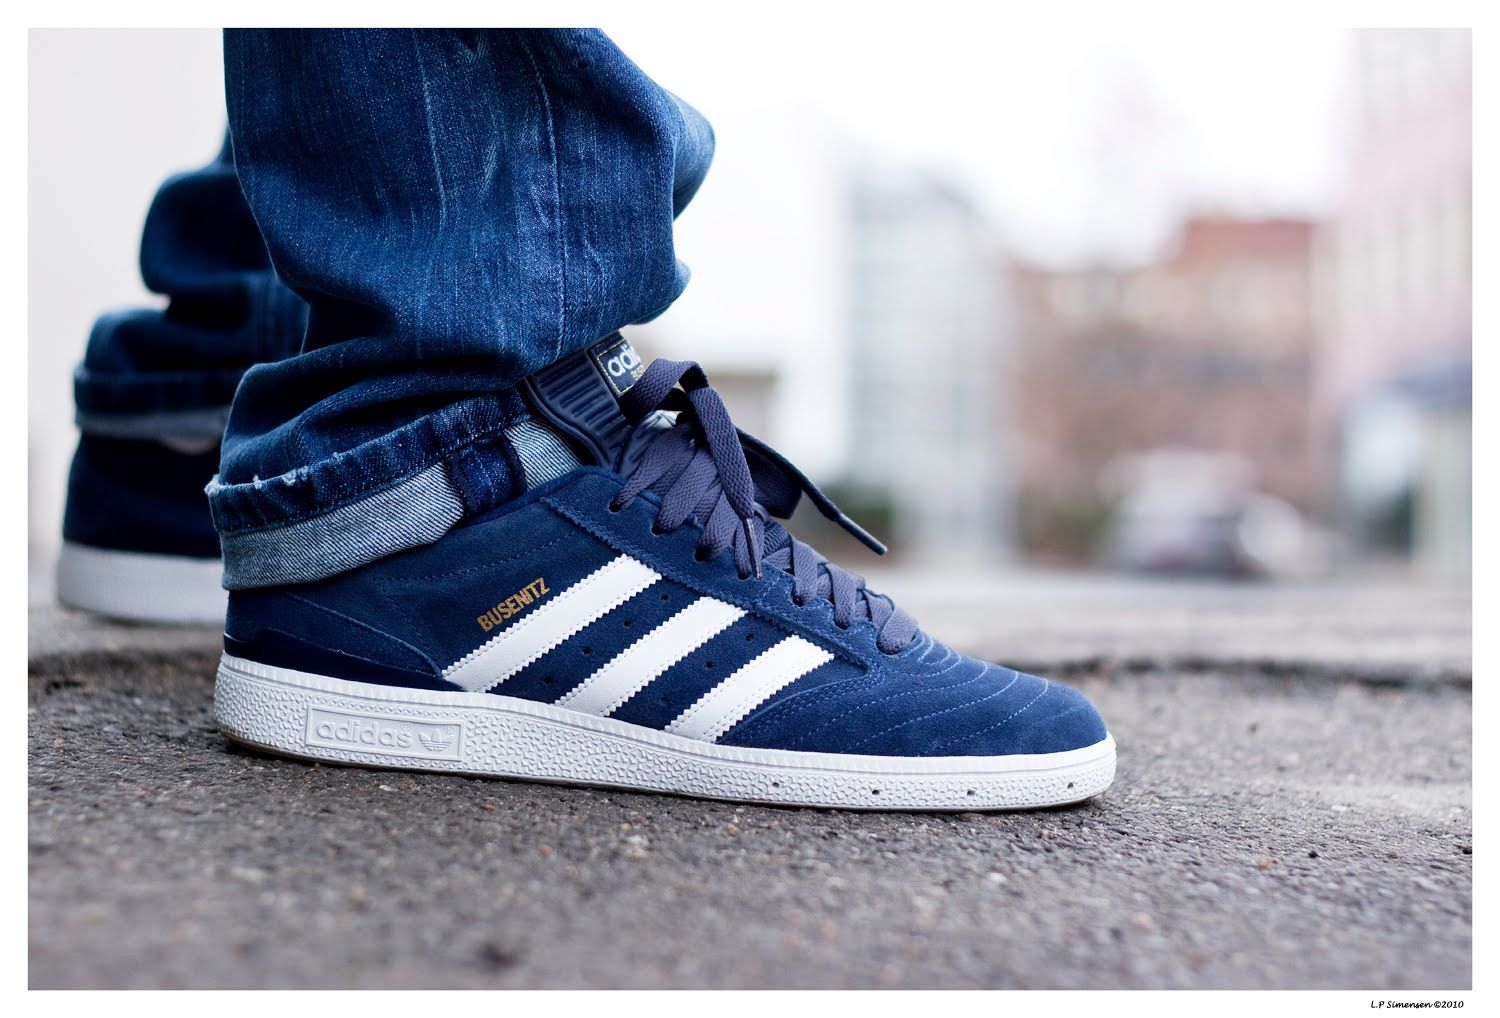 Best casual shoes, Sneakers, Casual shoes